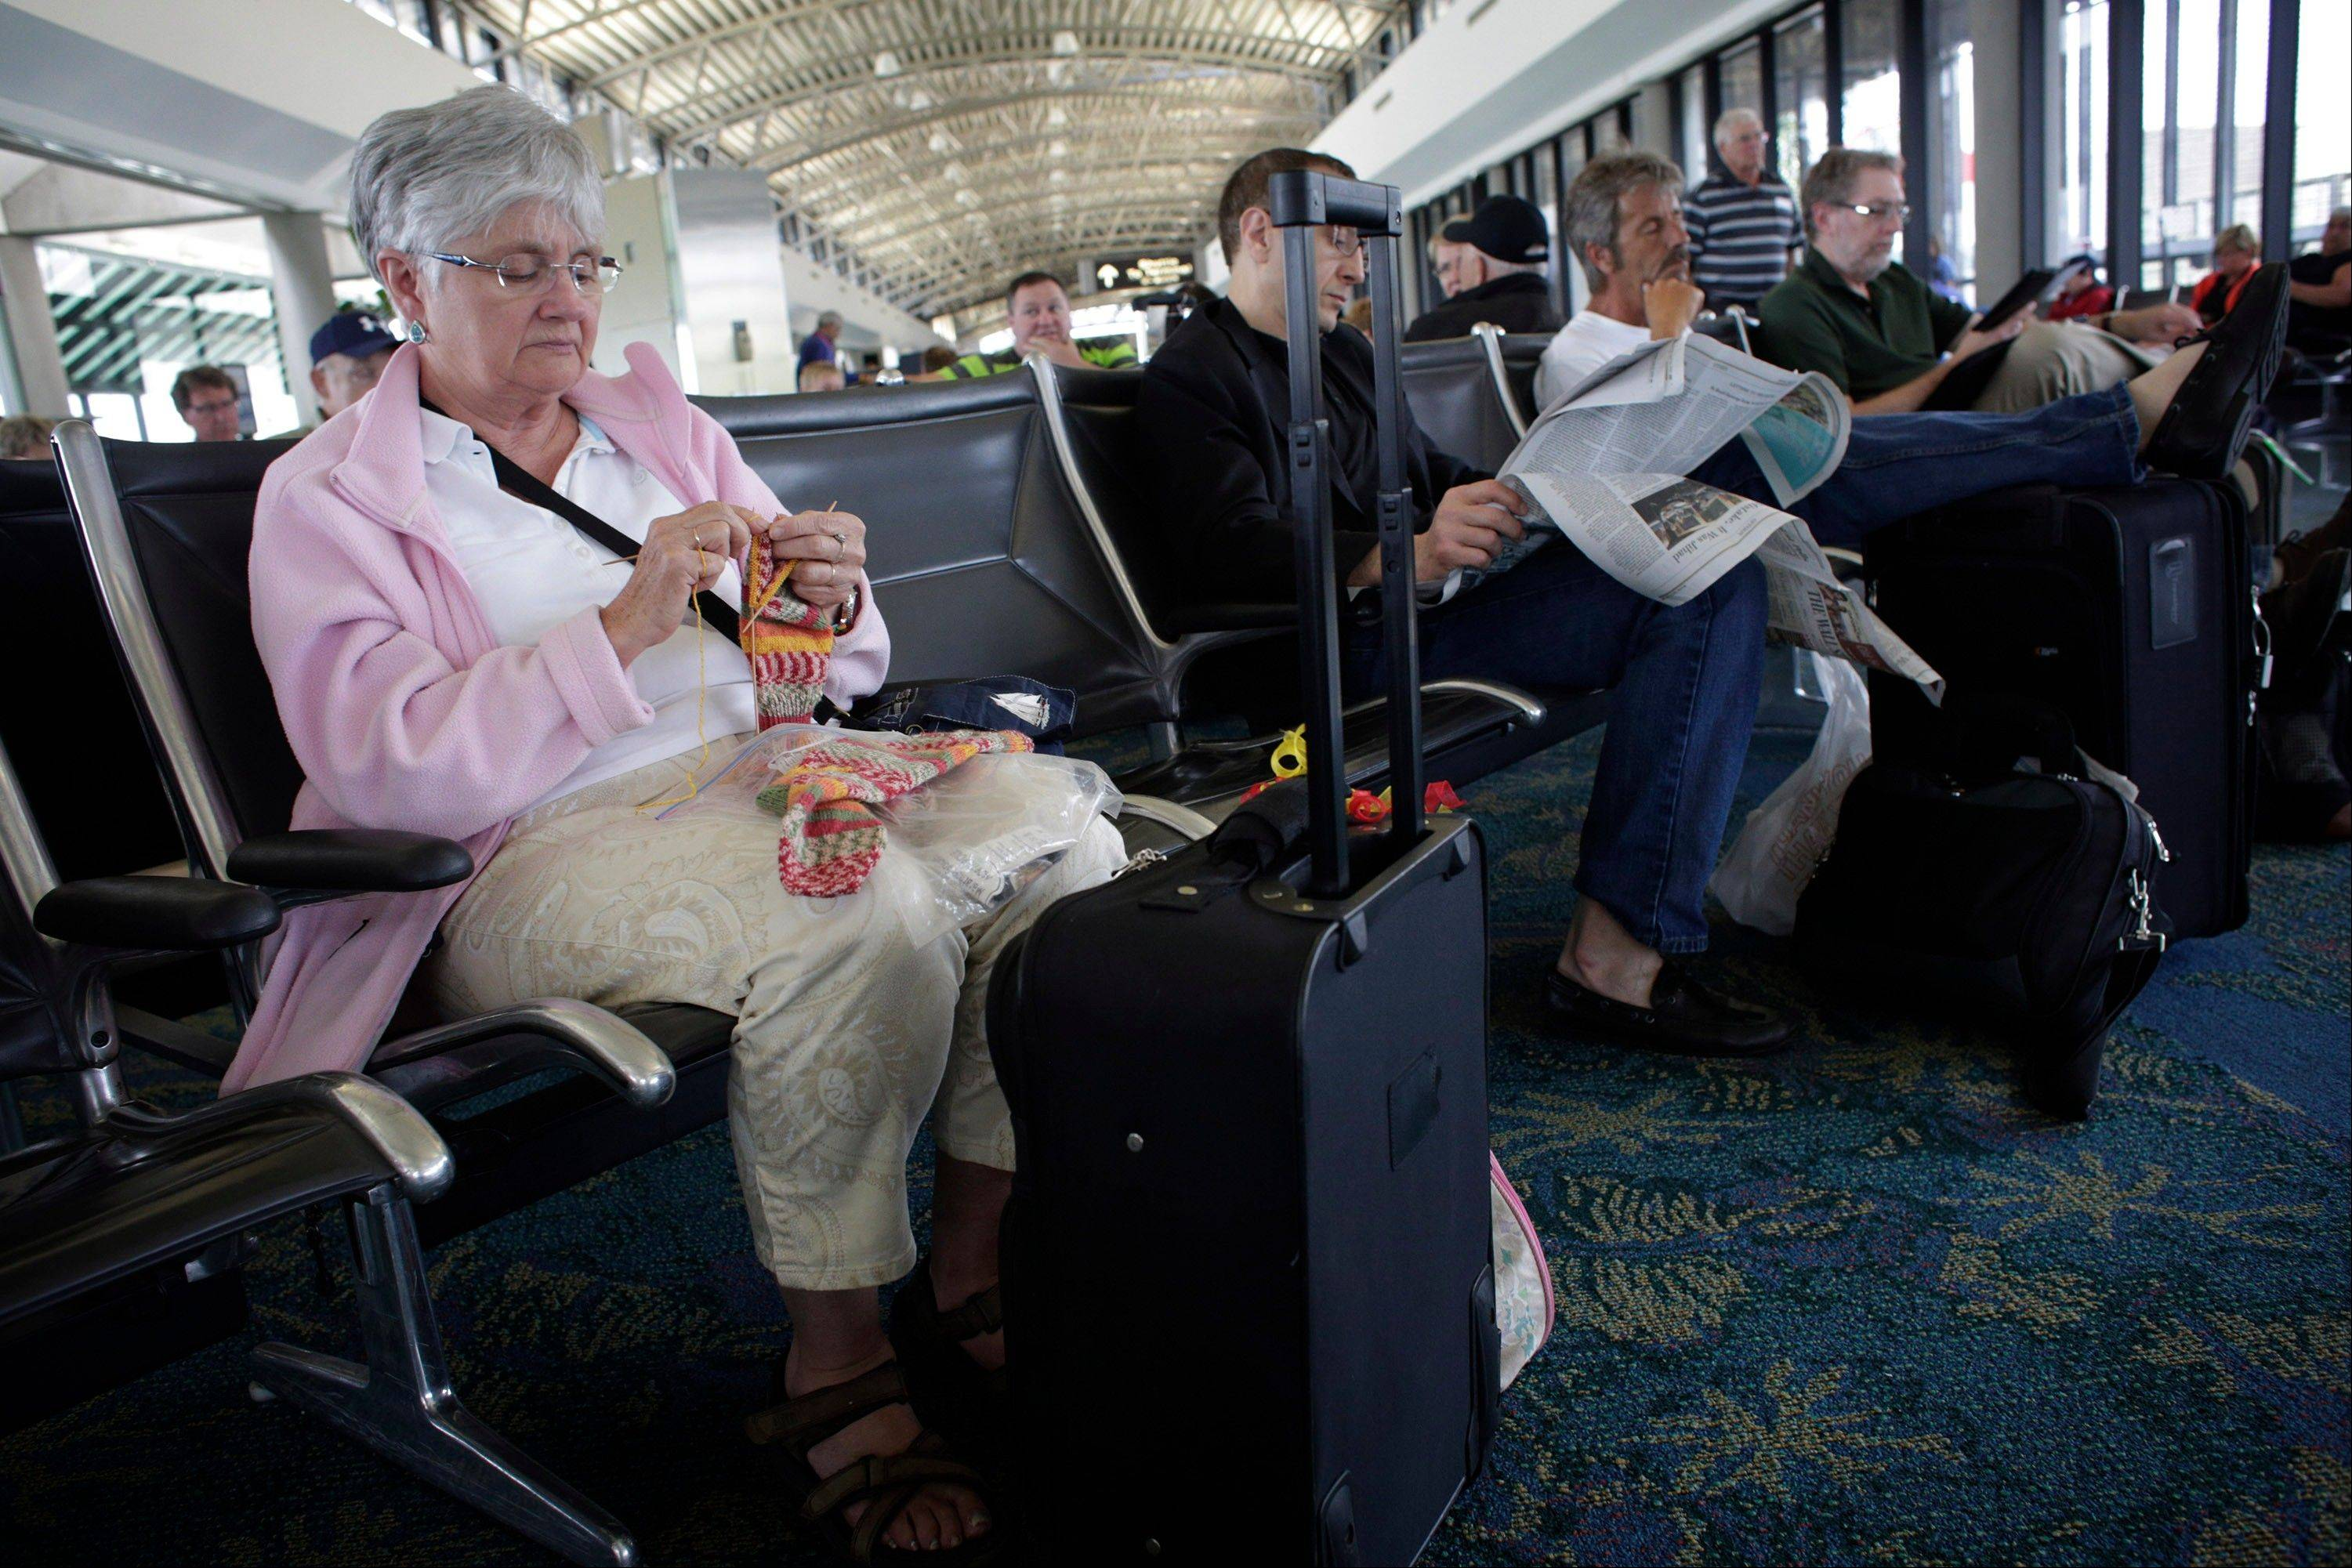 Penny MacDonald was supposed to depart Tampa International Airport on Monday at 1:40, but her flight to Toronto had been delayed to 3:10. She passed the time by knitting at the gate.